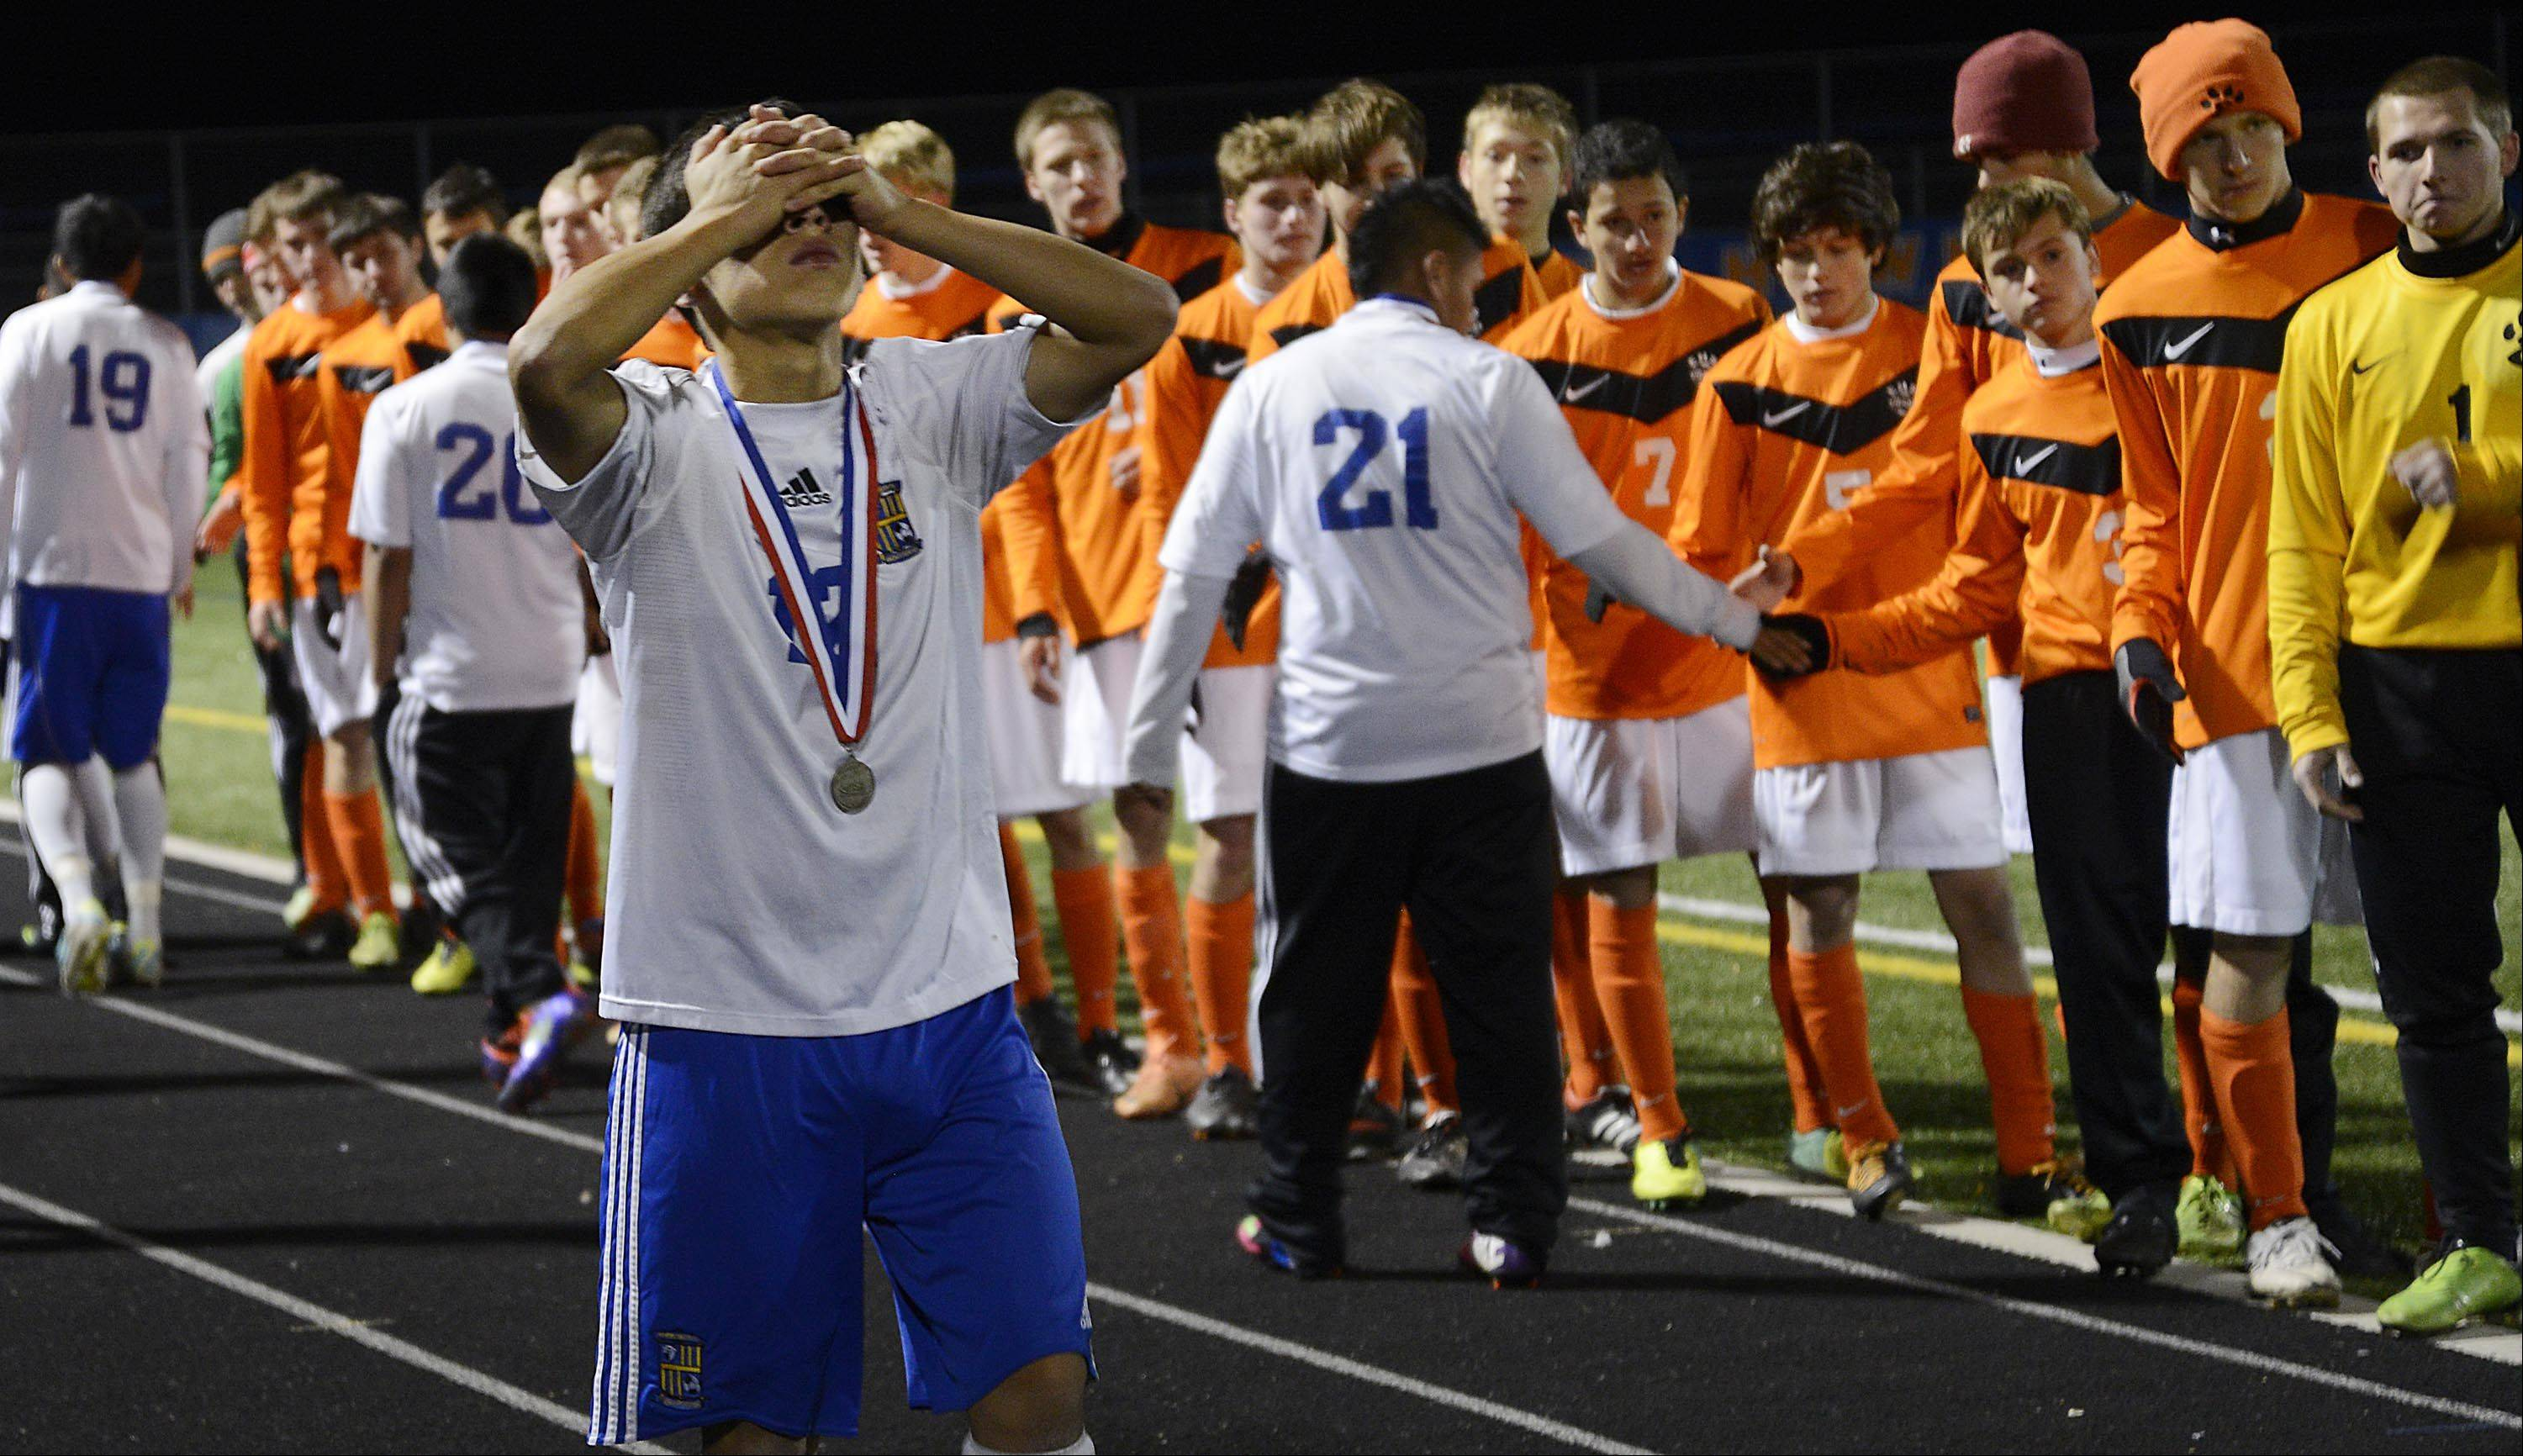 Edwardsville denies Wheeling in state final